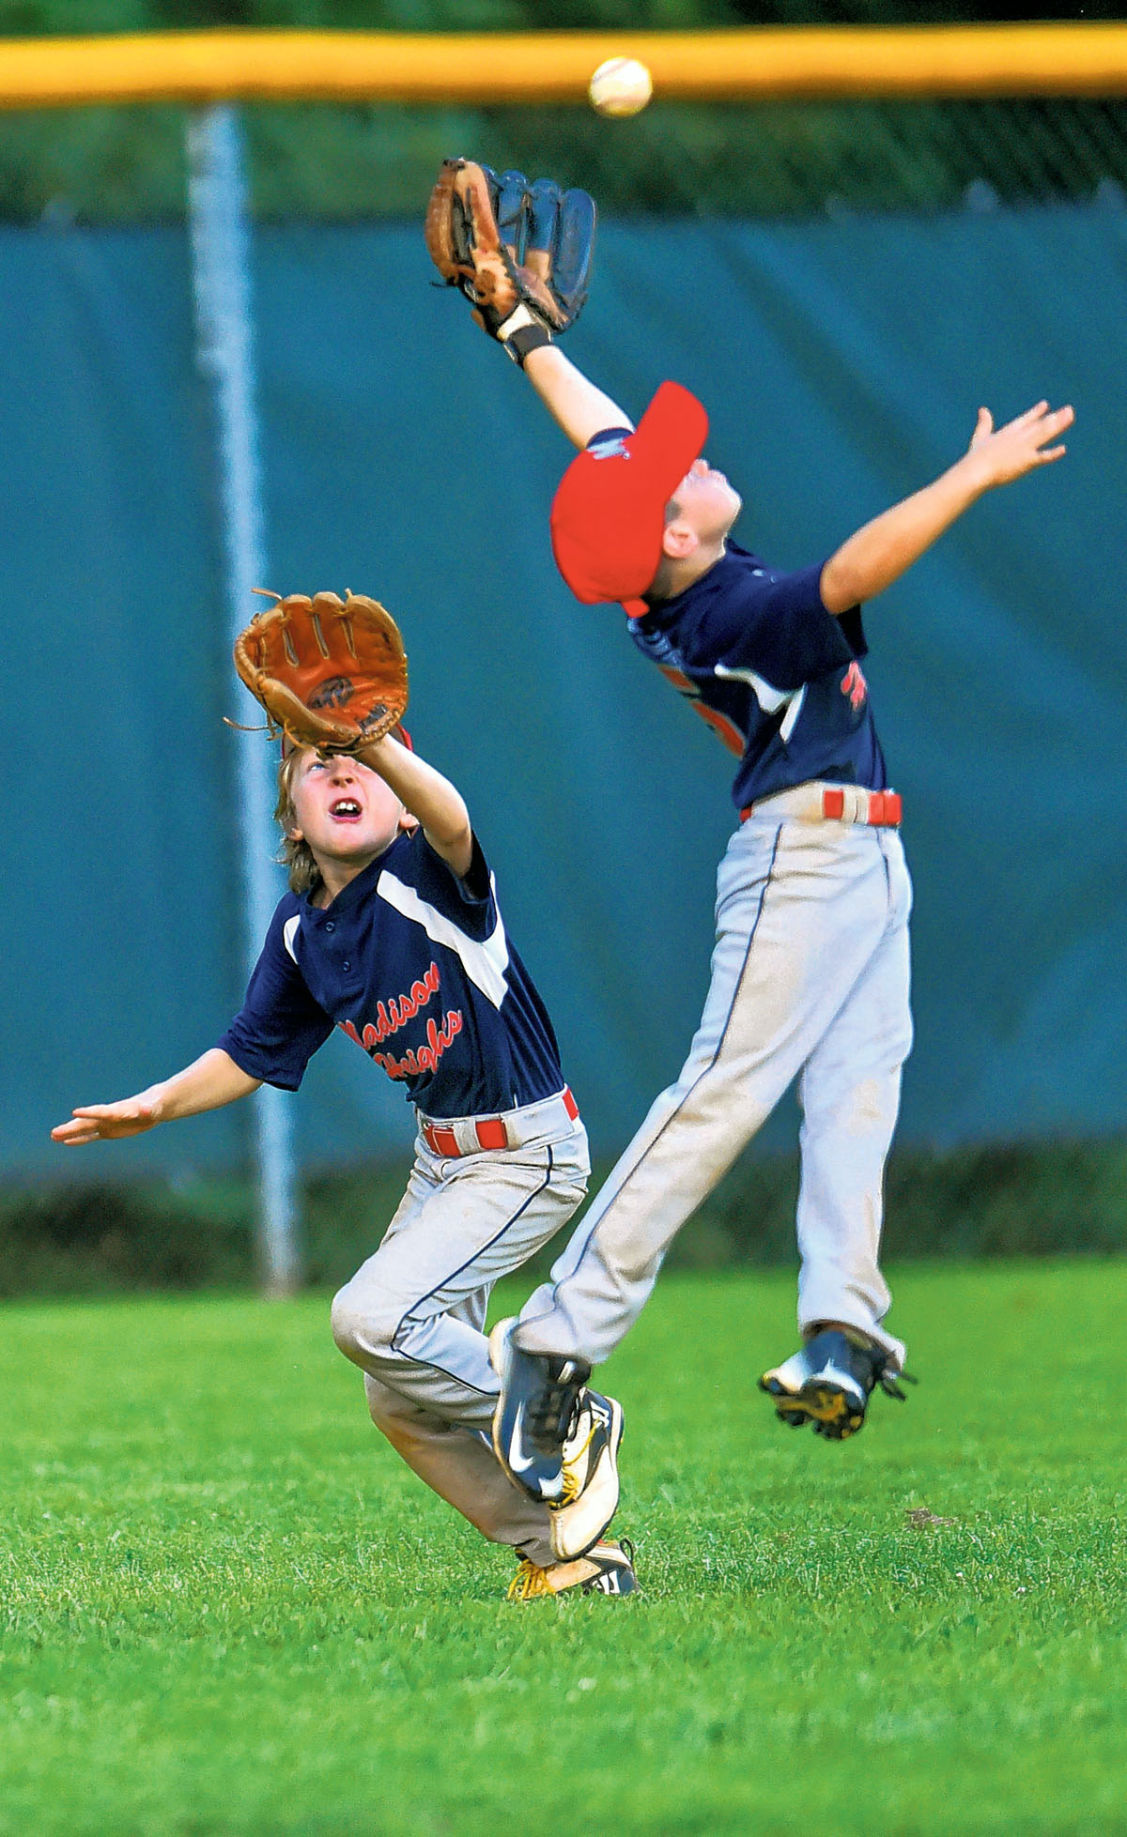 Dixie Youth Coach Pitch Baseball: Madison Heights wins state